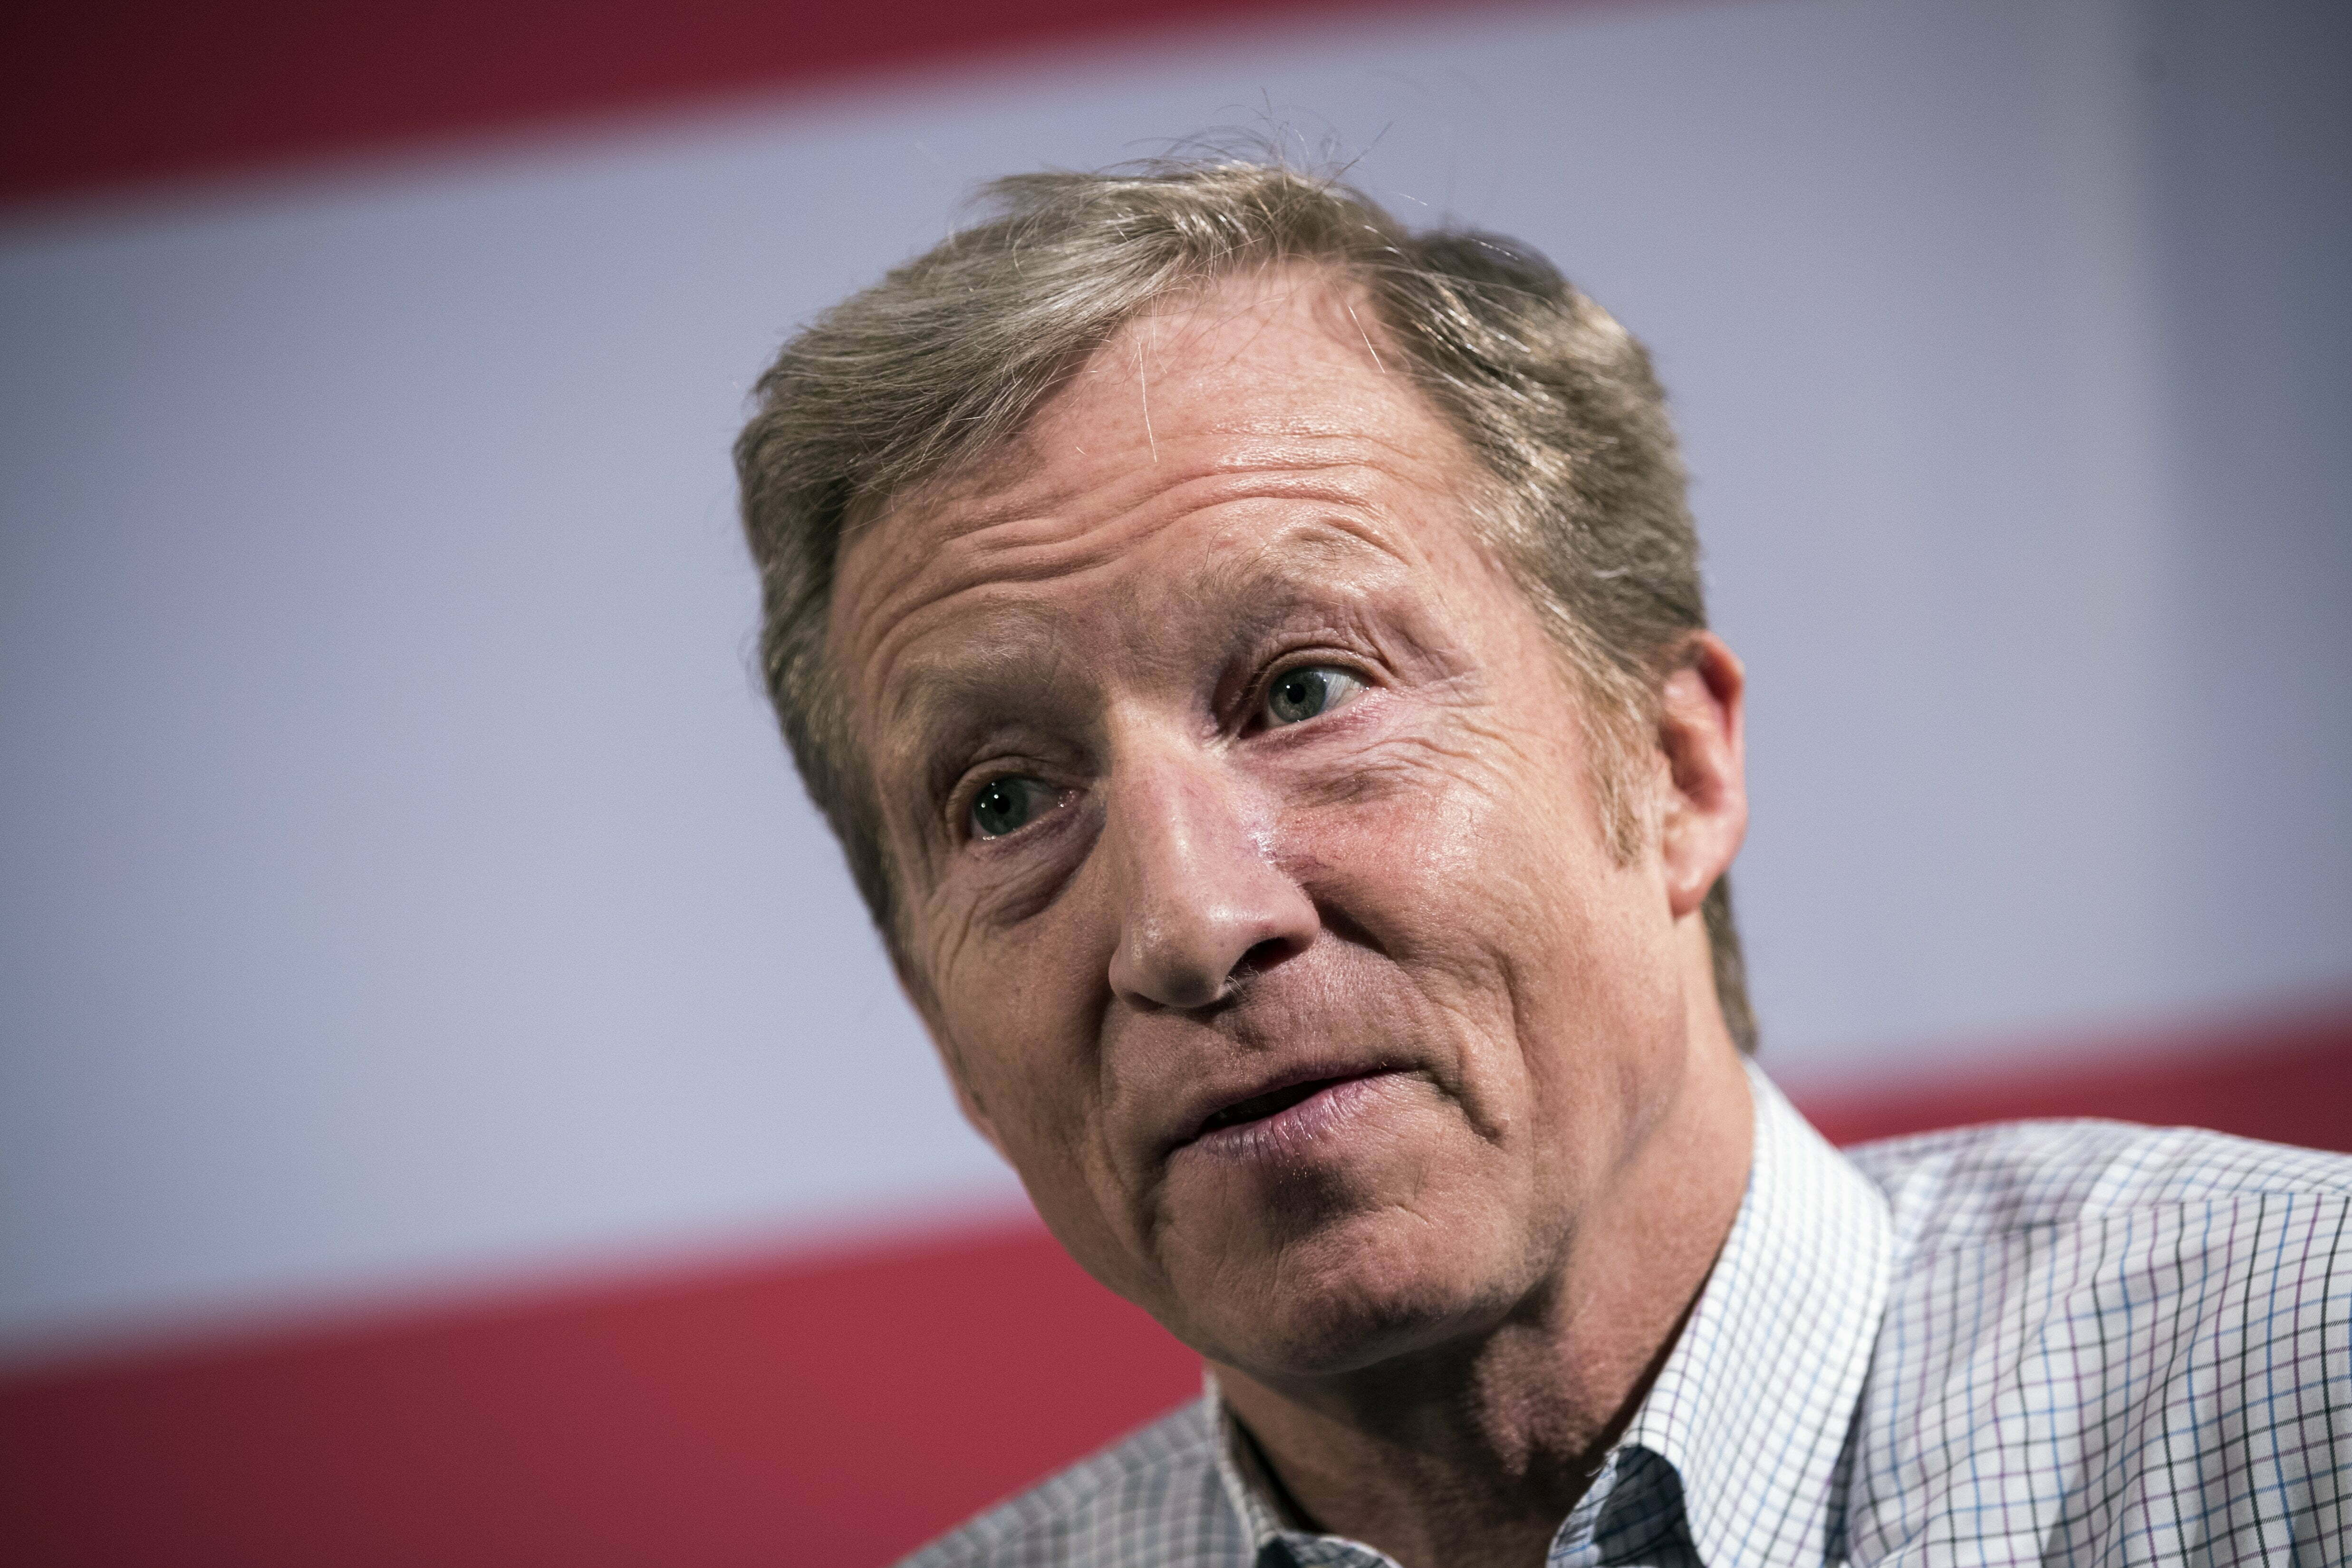 Tom Steyer Campaign Aide Accused of Offering Money for Endorsements Resigns 1